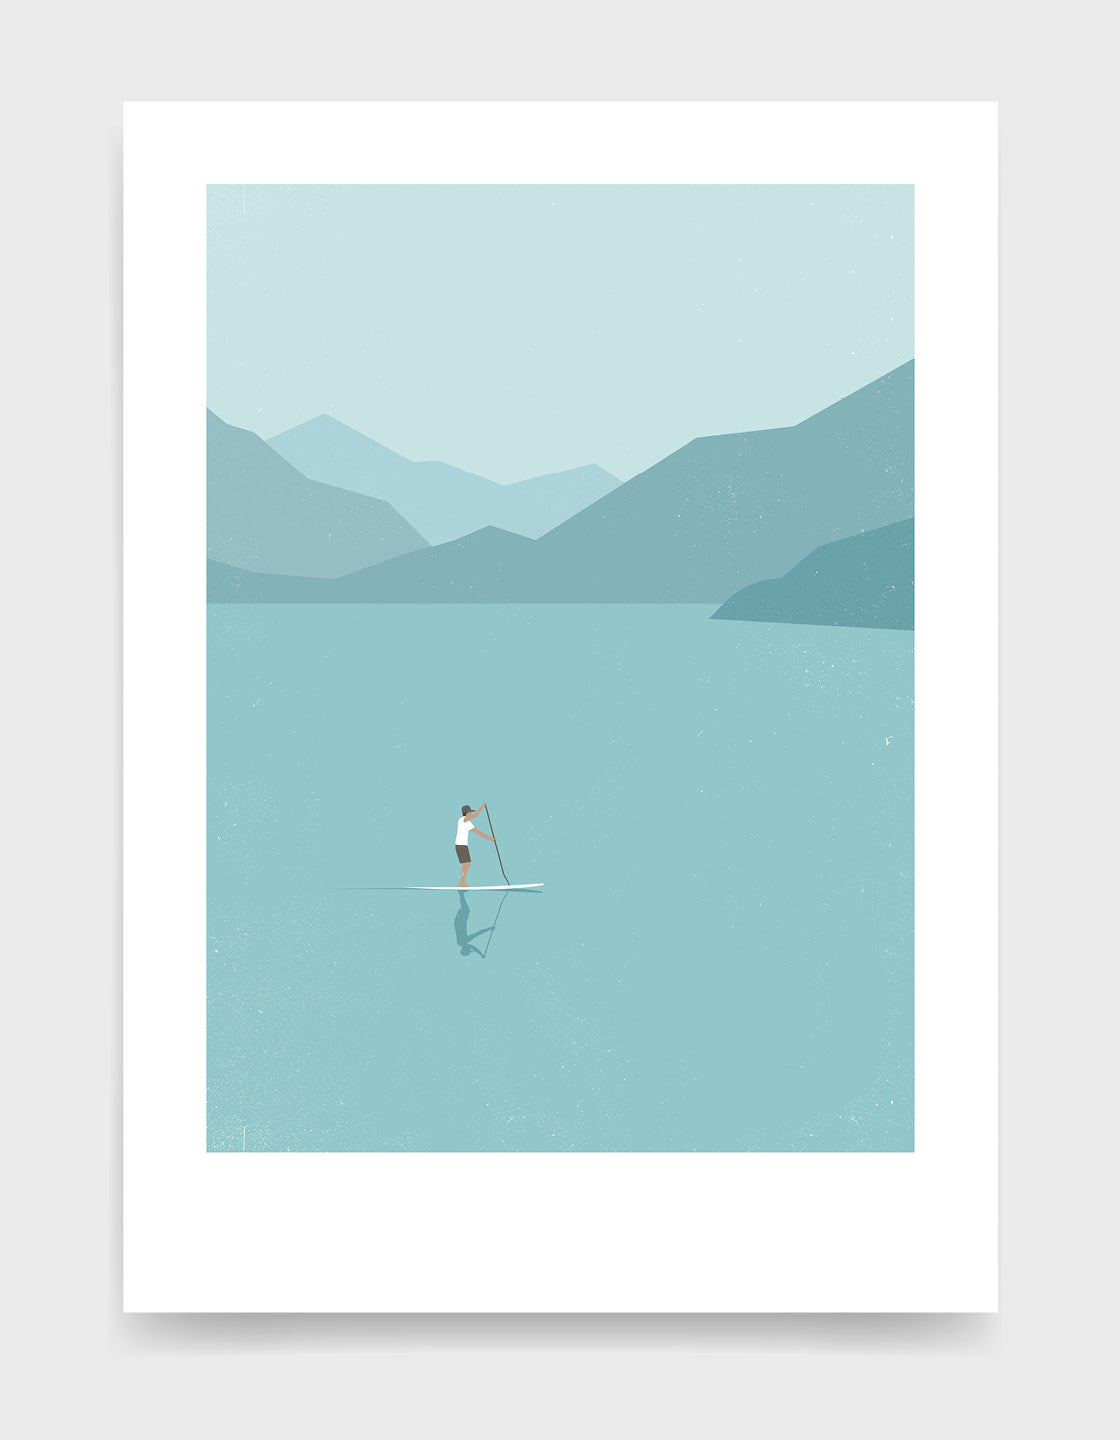 Man on a paddleboard on a vast lake surrounded by misty mountains. Minimal art print in blue hues, perfect for Scandi interiors